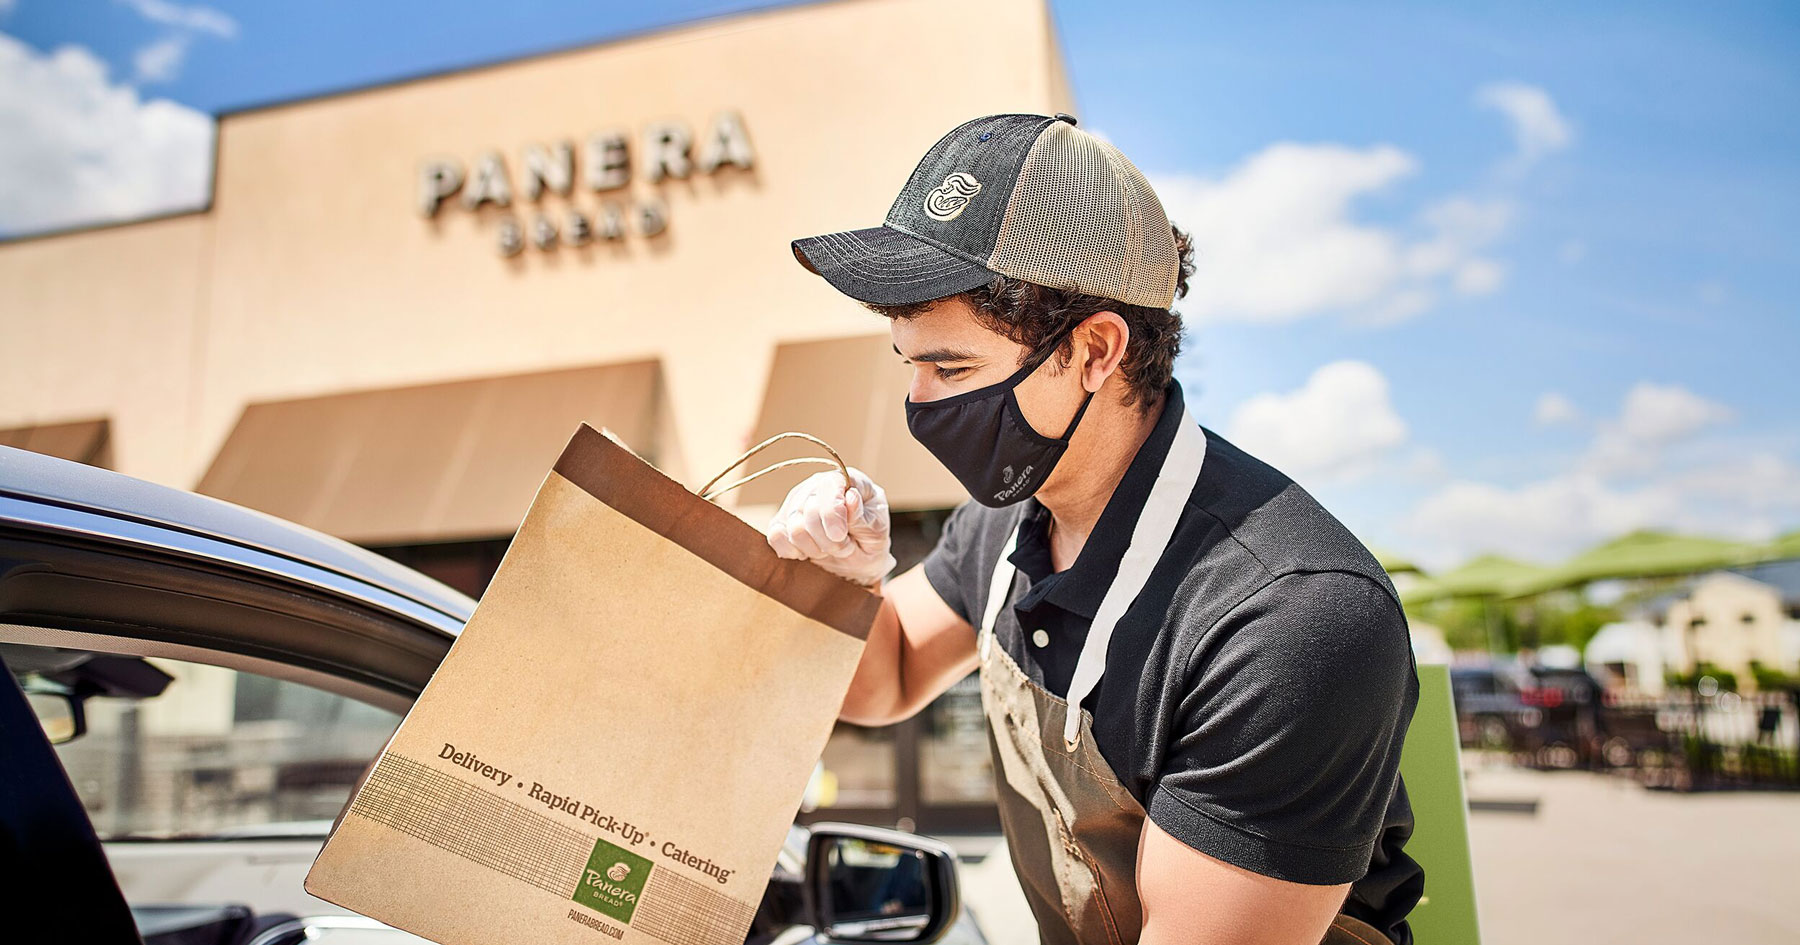 Panera adds geofencing to curbside pickup